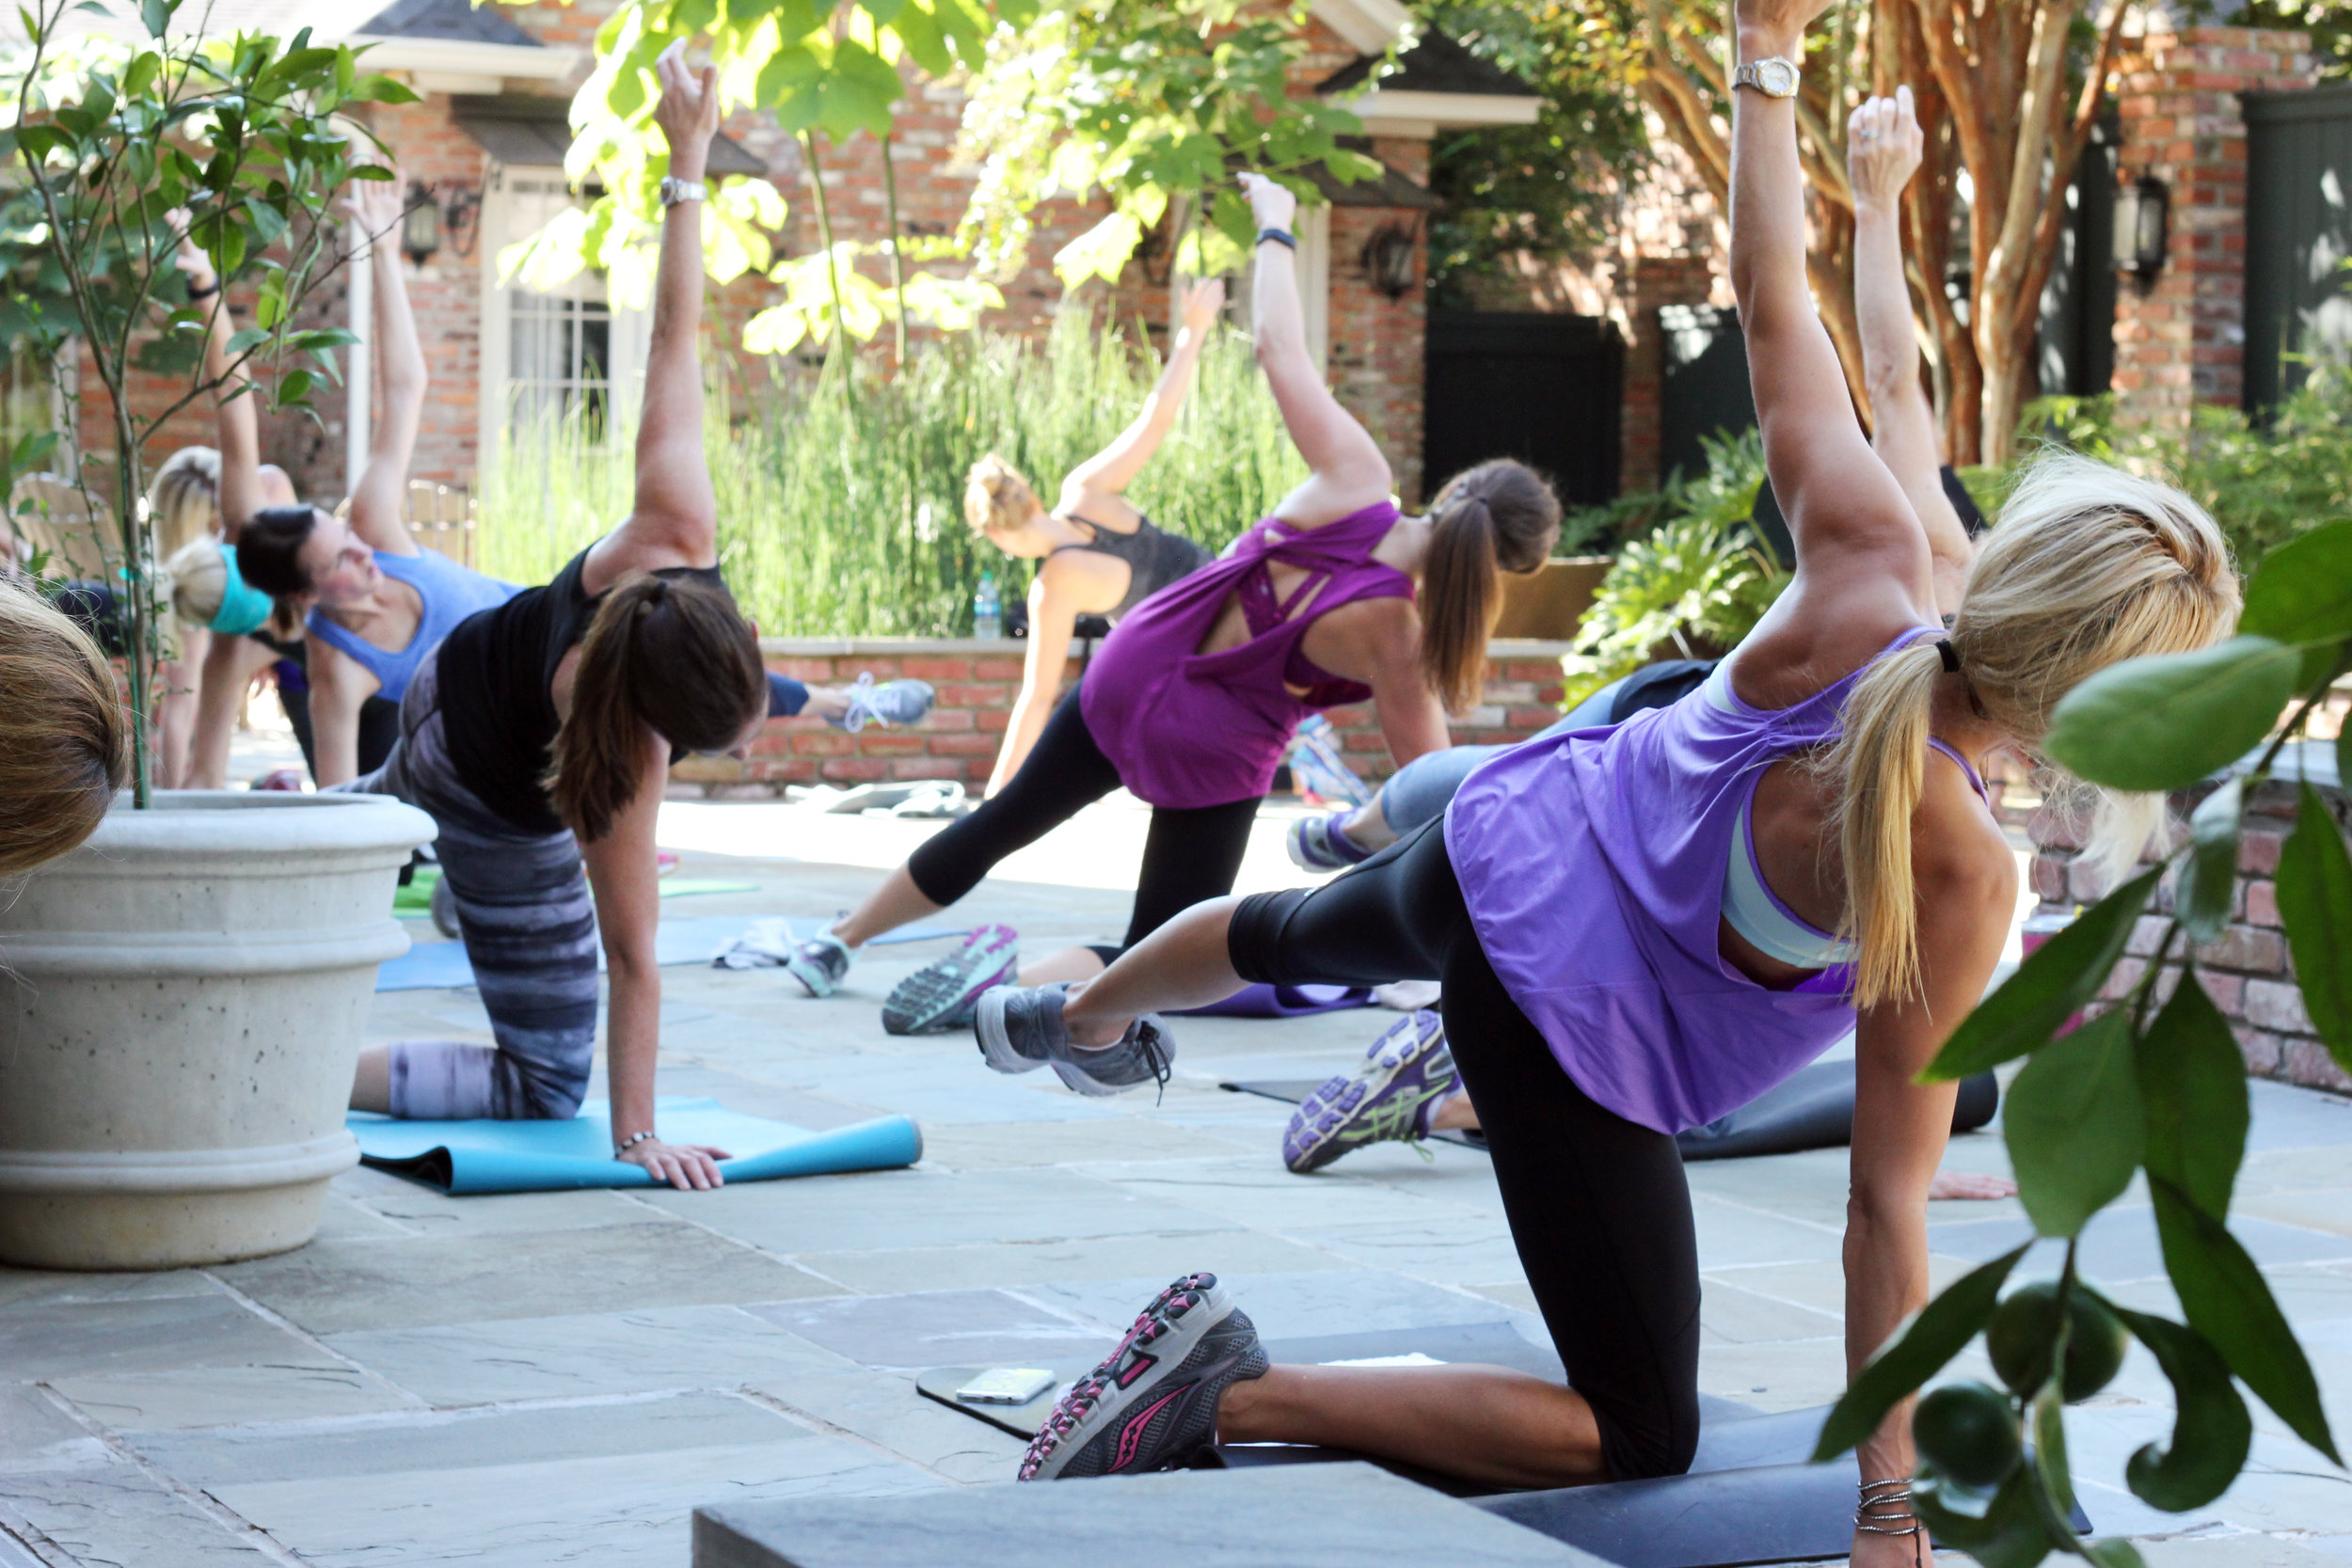 Join in as TreadBR and lululemon Acadian Village pack it up and head to Explore Yoga & Wellness in Shreveport for a dynamic morning workout and a VIP lululemon shopping experience. We'll have good company, fresh locally roasted coffee, and light bites. Click below to purchase a ticket.